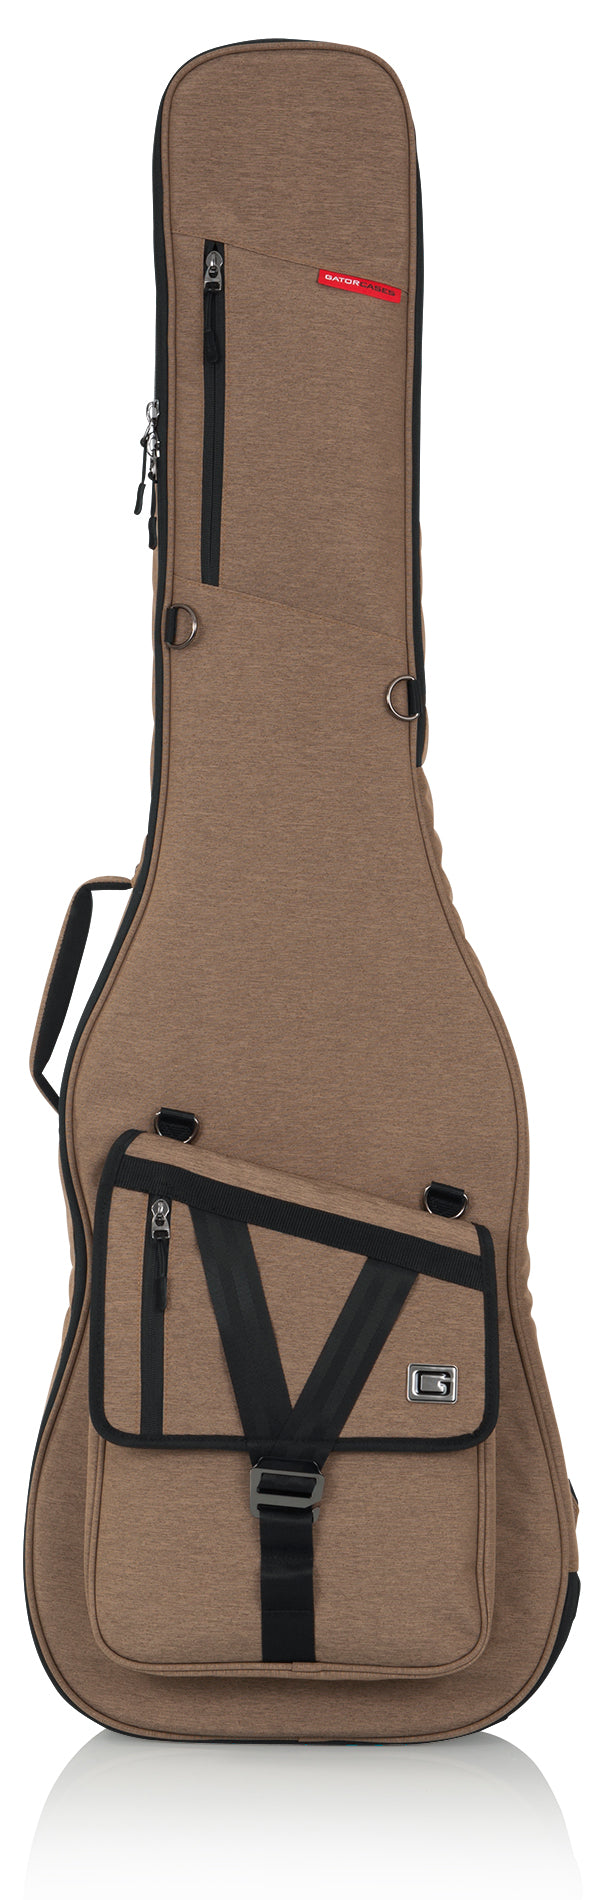 Gator GT-BASS-TAN Transit Bass Guitar Bag - Tan